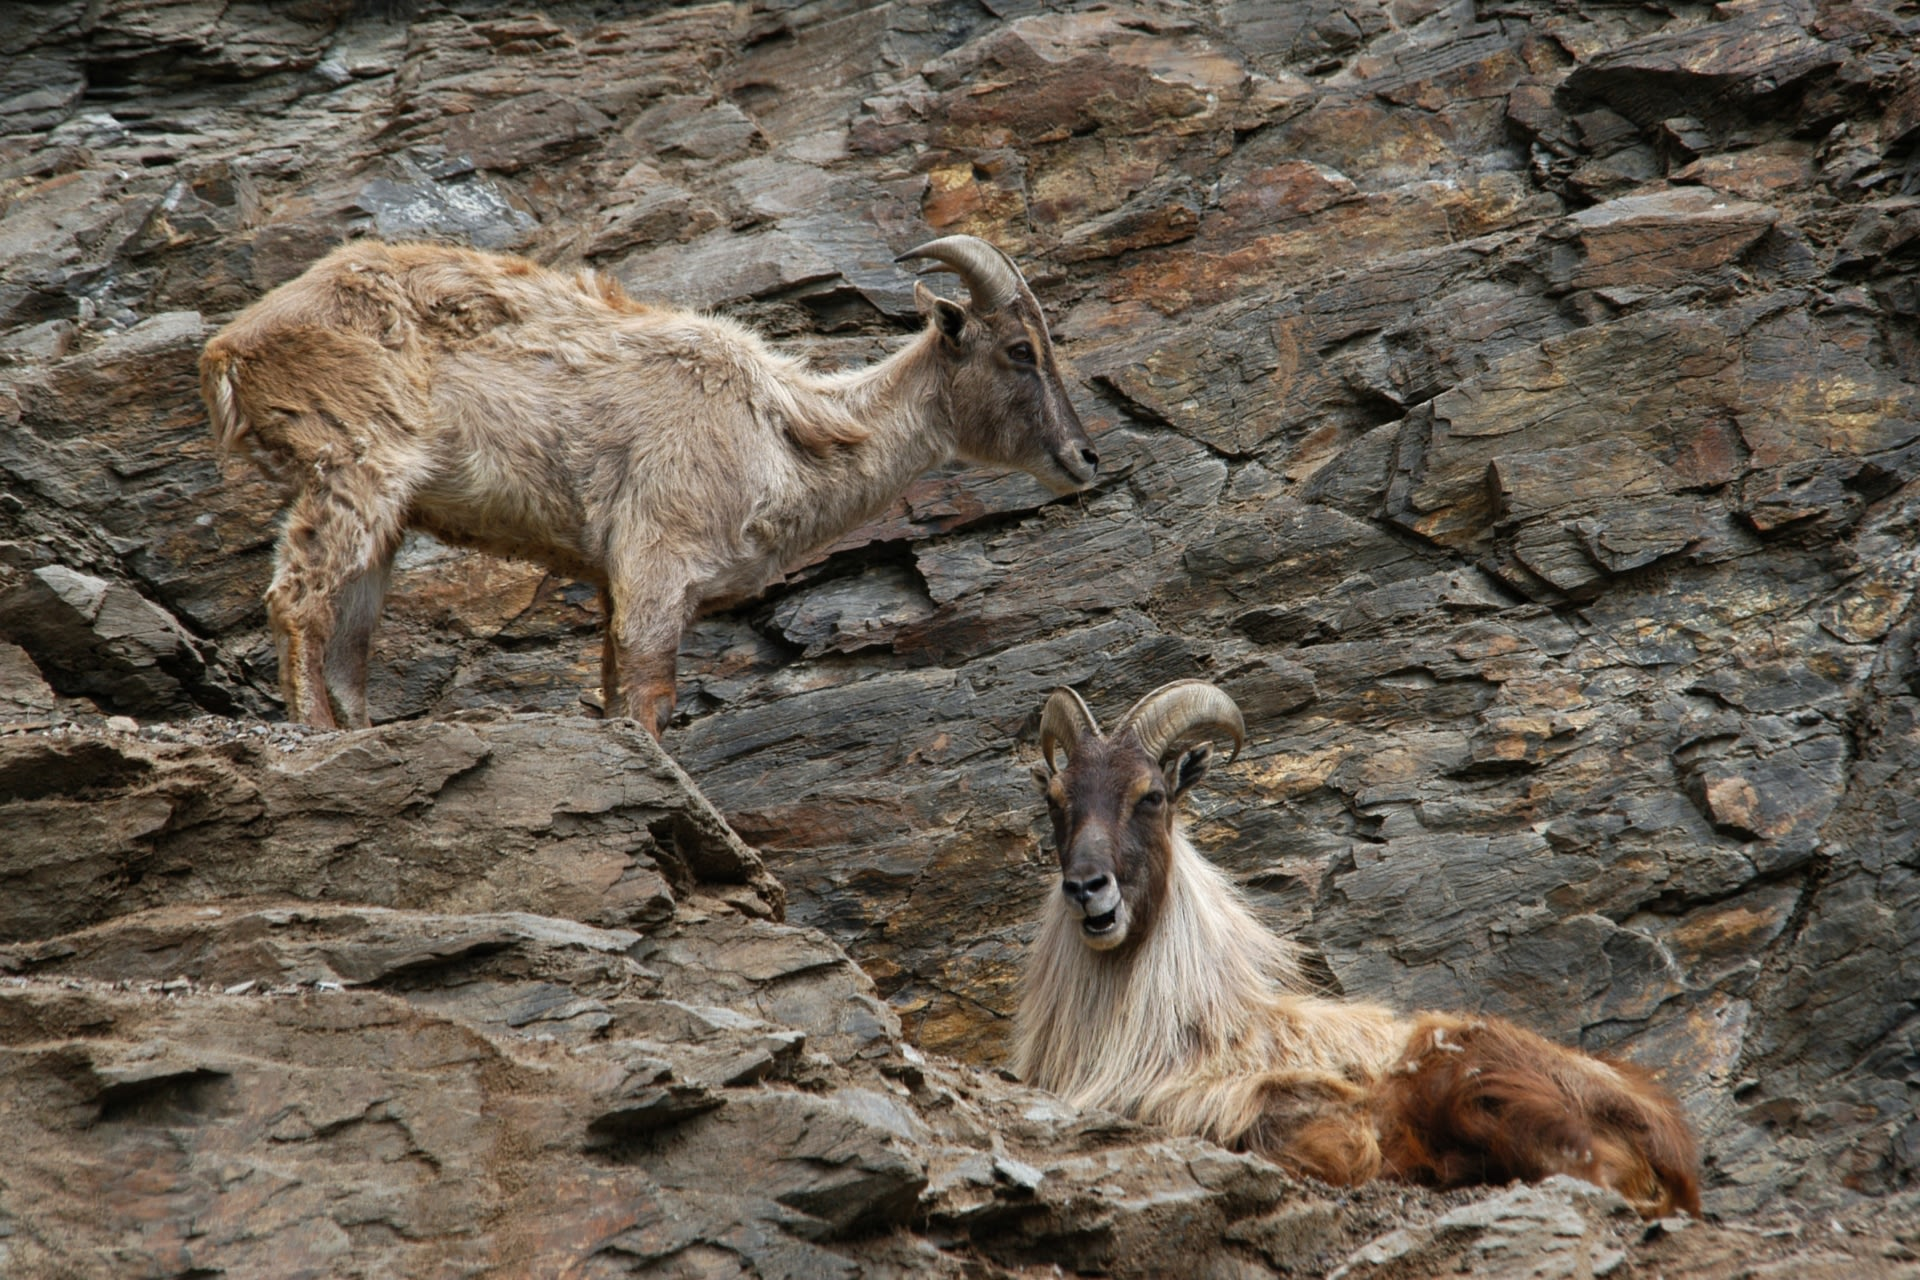 A long mane and longer horns, which can grow up to 45 cm, helps to distinguish the male Himalayan tahr from the female. Photo: Vladimir Wrangel/Shutterstock